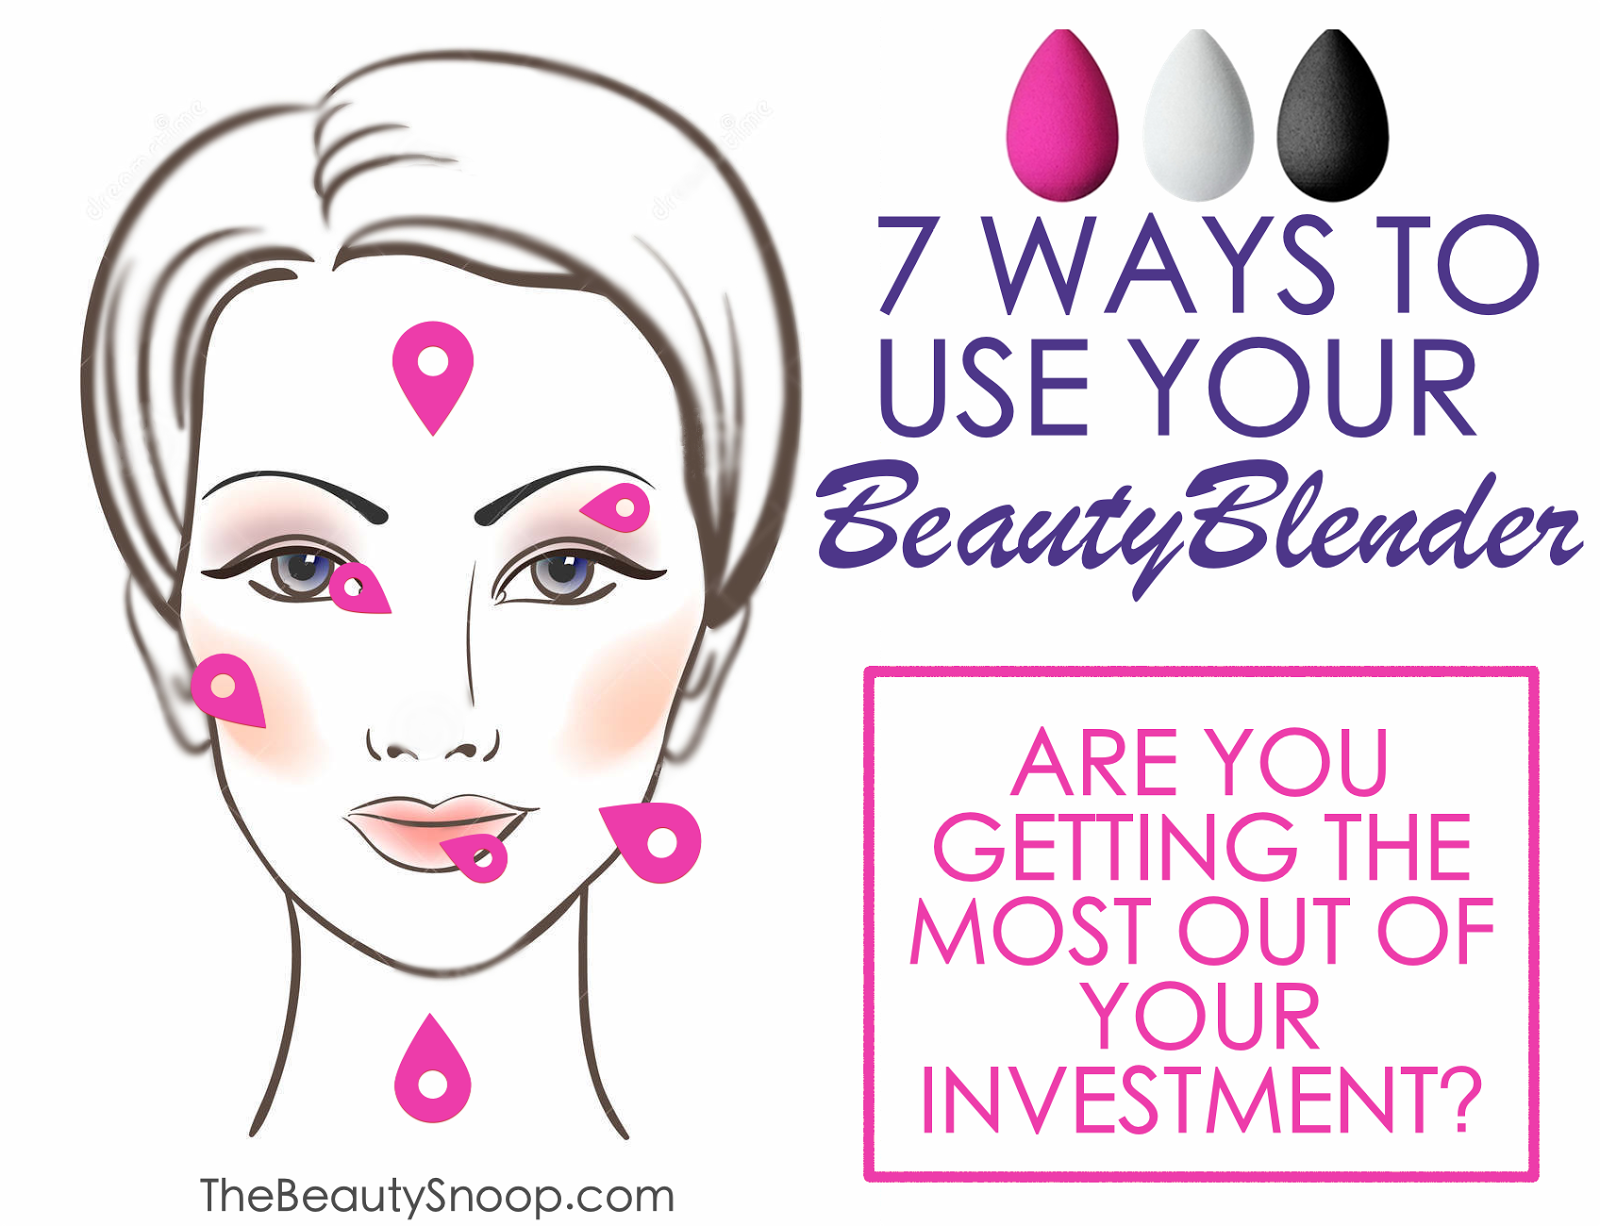 a guide to using your beauty blender for maximum results